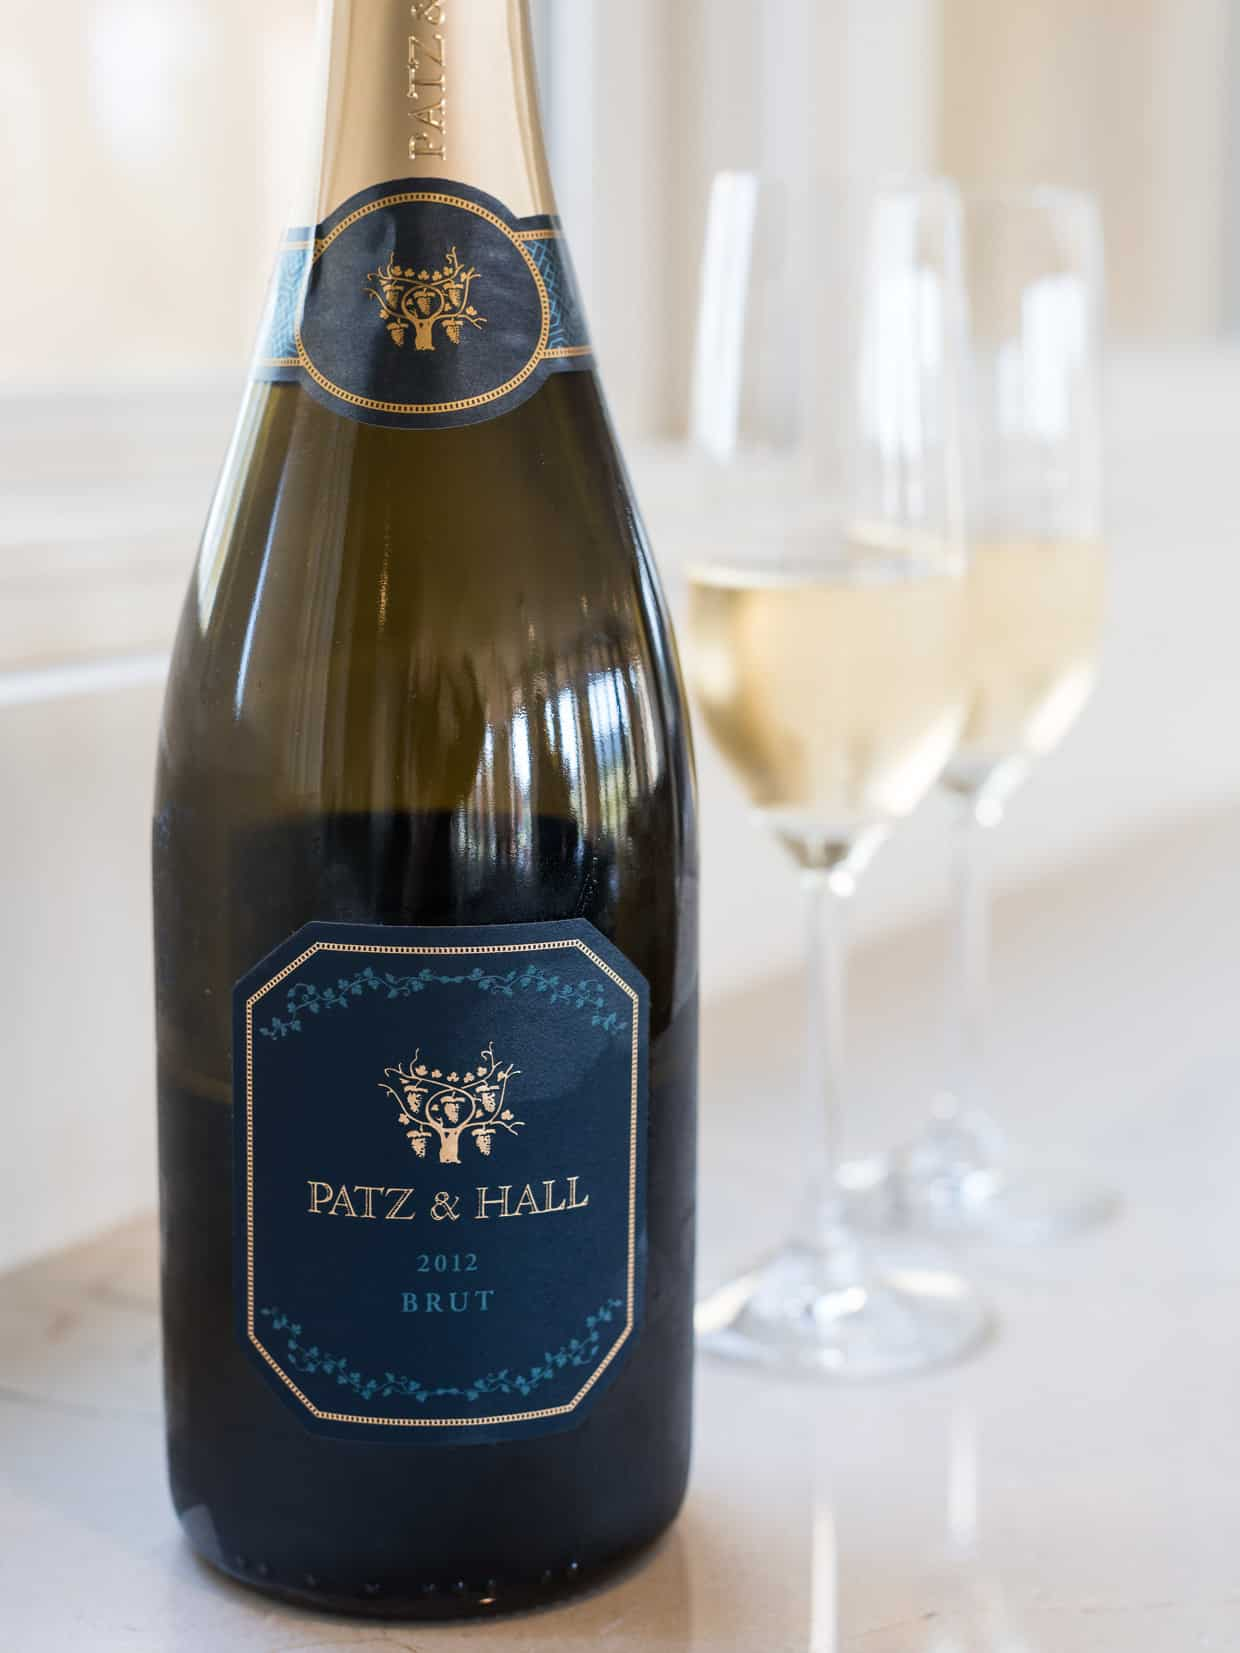 A bottle of Patz & Hall 2012 Brut.